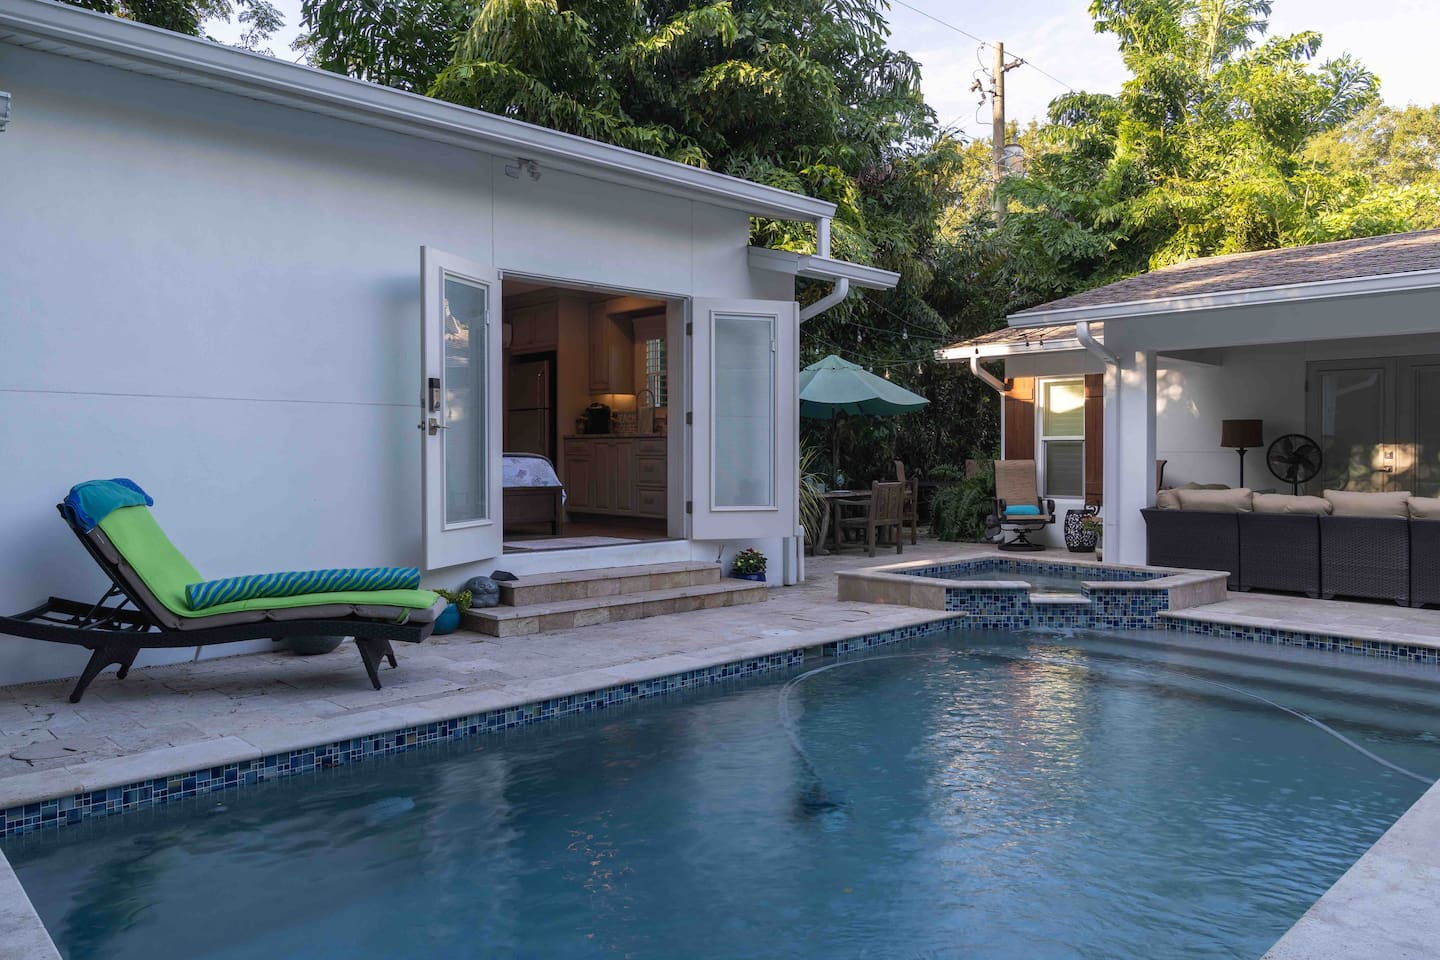 Exterior Patio and Pool Area